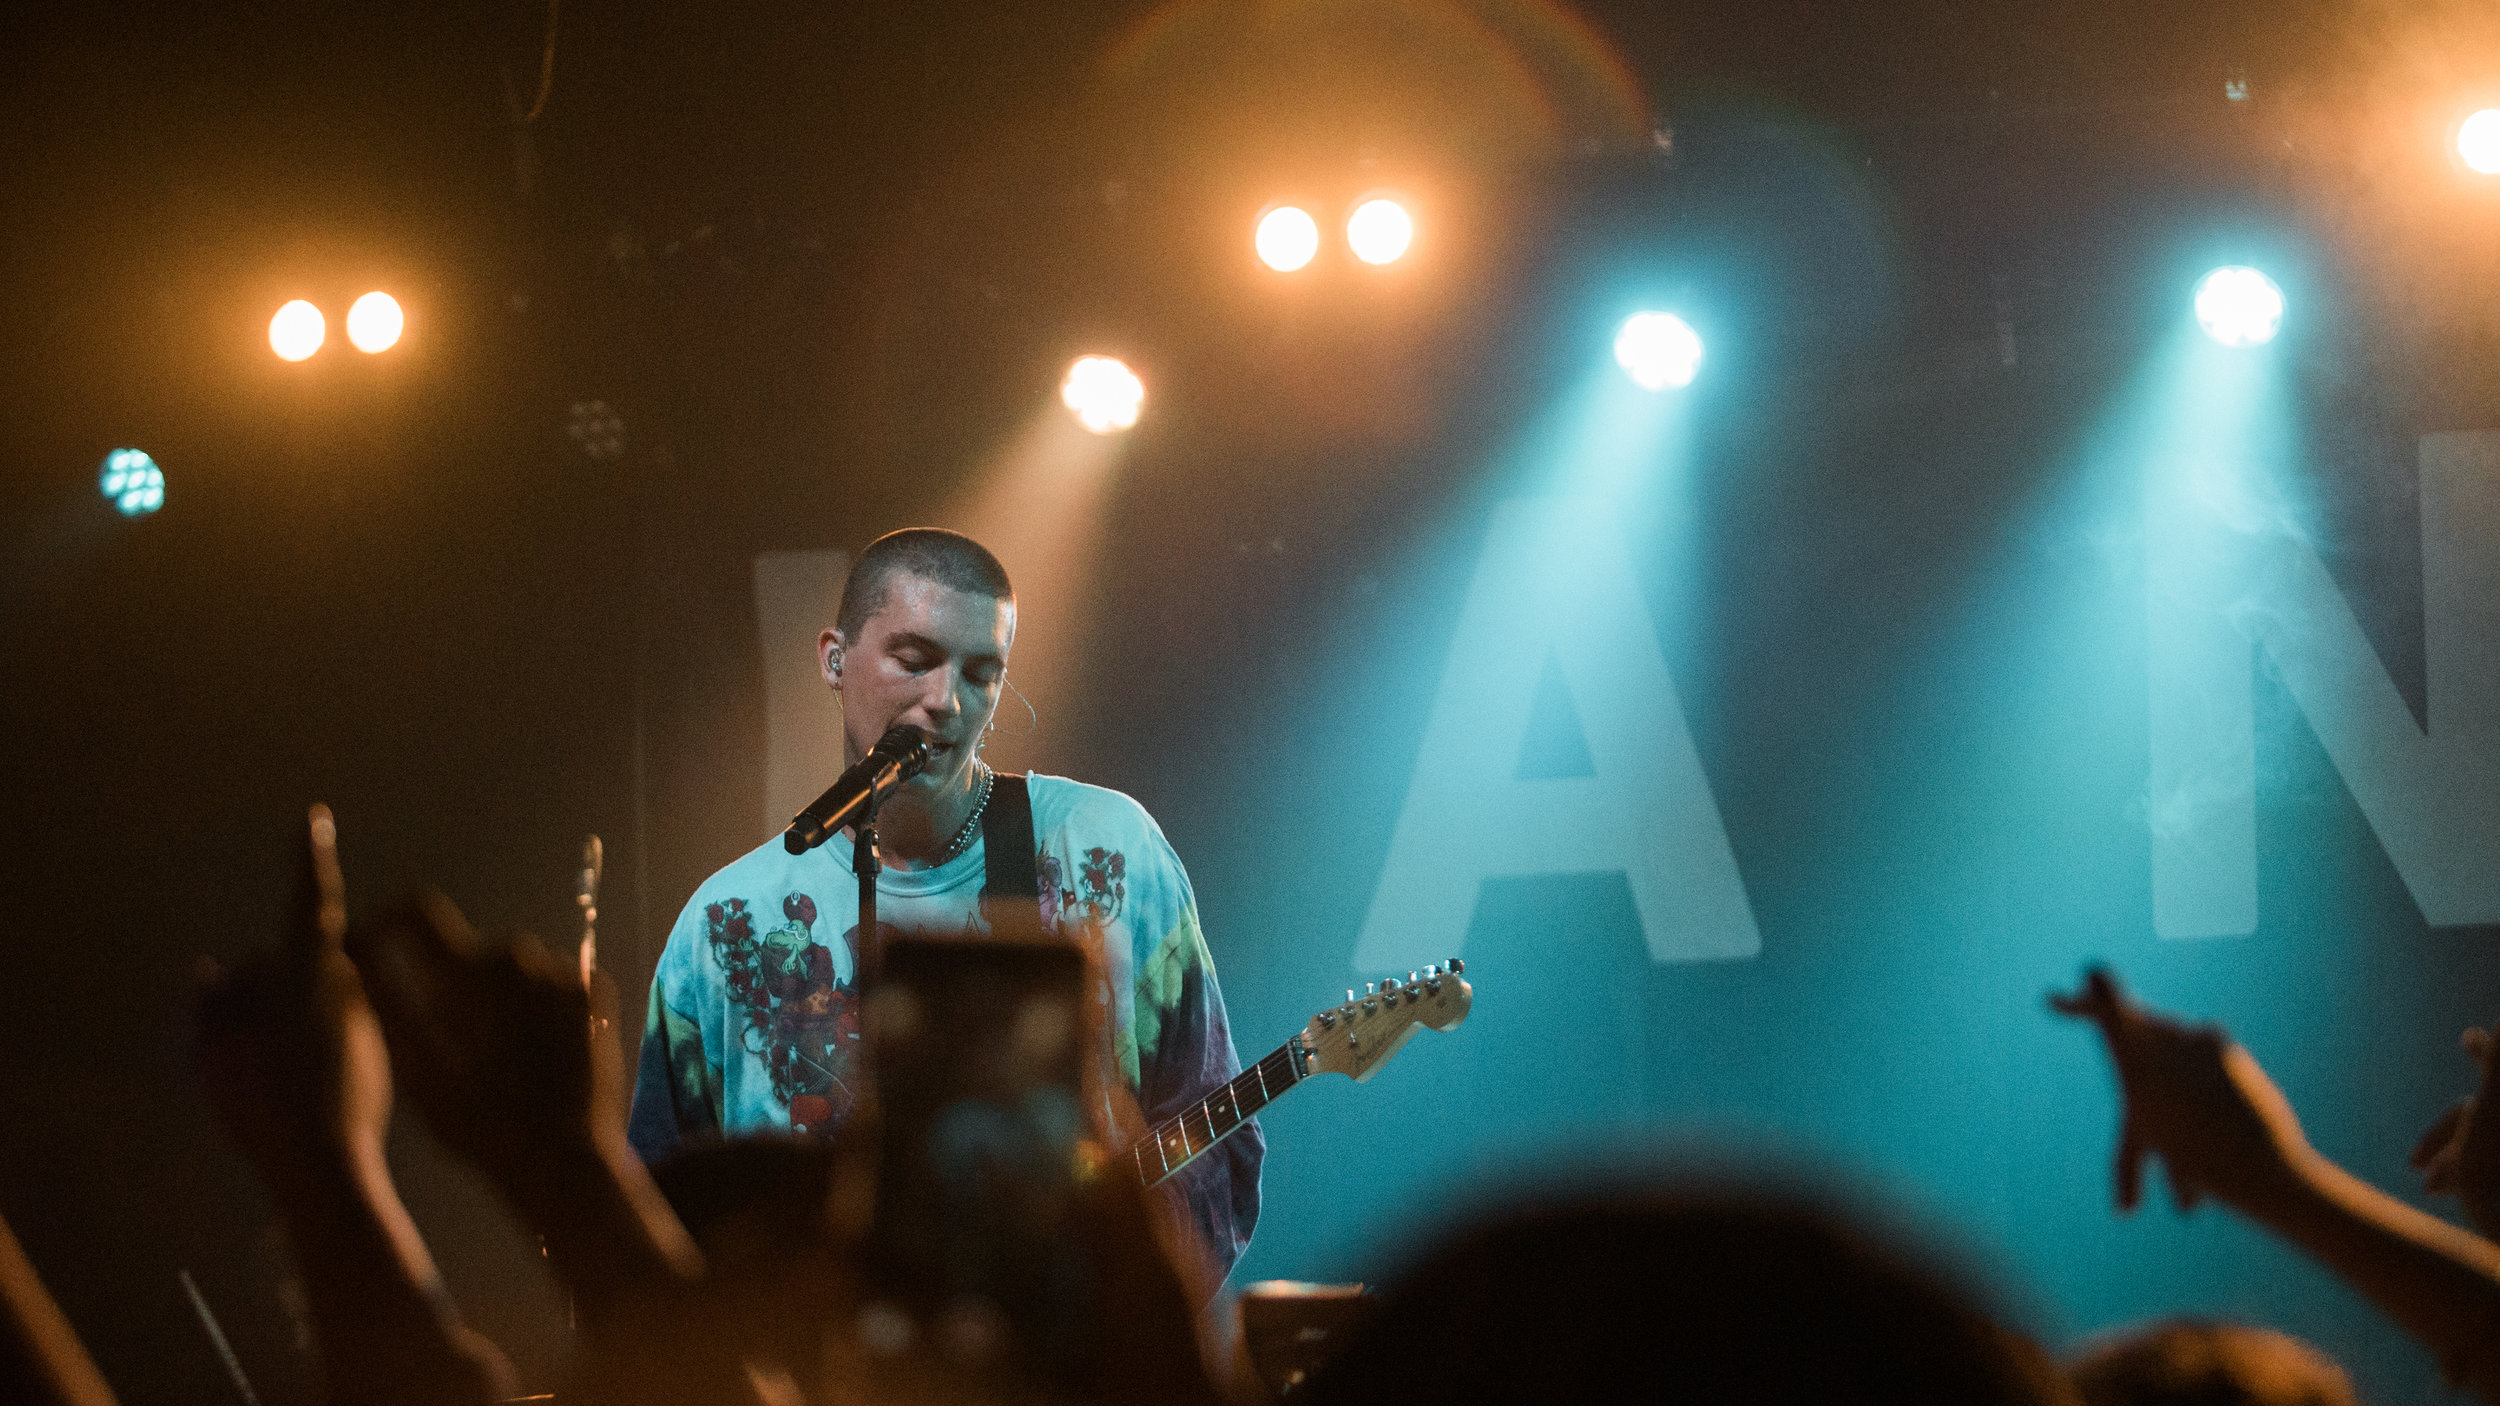 lany_chicago_08.01.18 (21 of 26).jpg